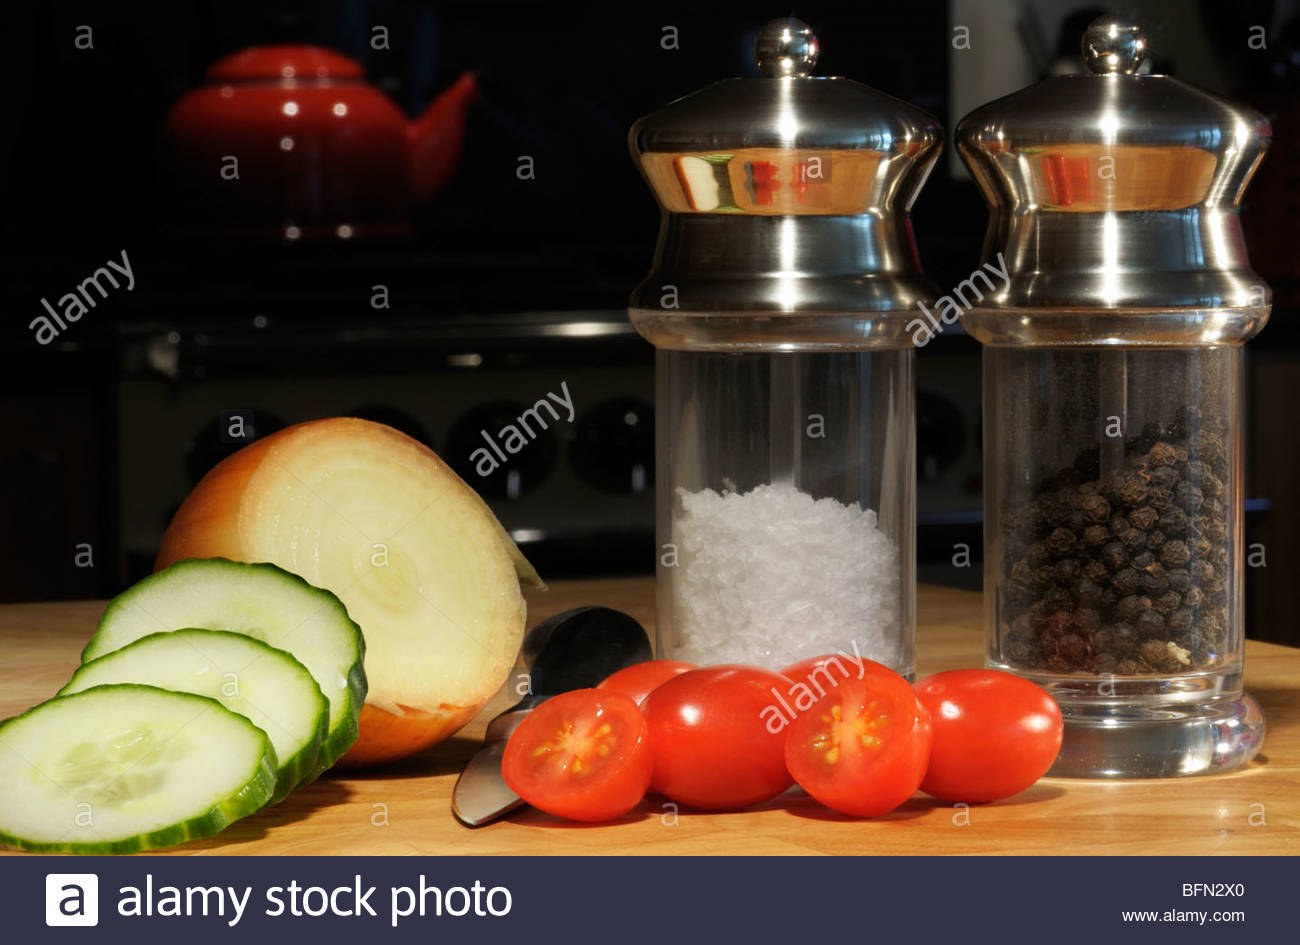 Straight on image of cucumber, onion and tomatoes with salt and pepper mills on a chopping board, Dorset, England, - Stock Image